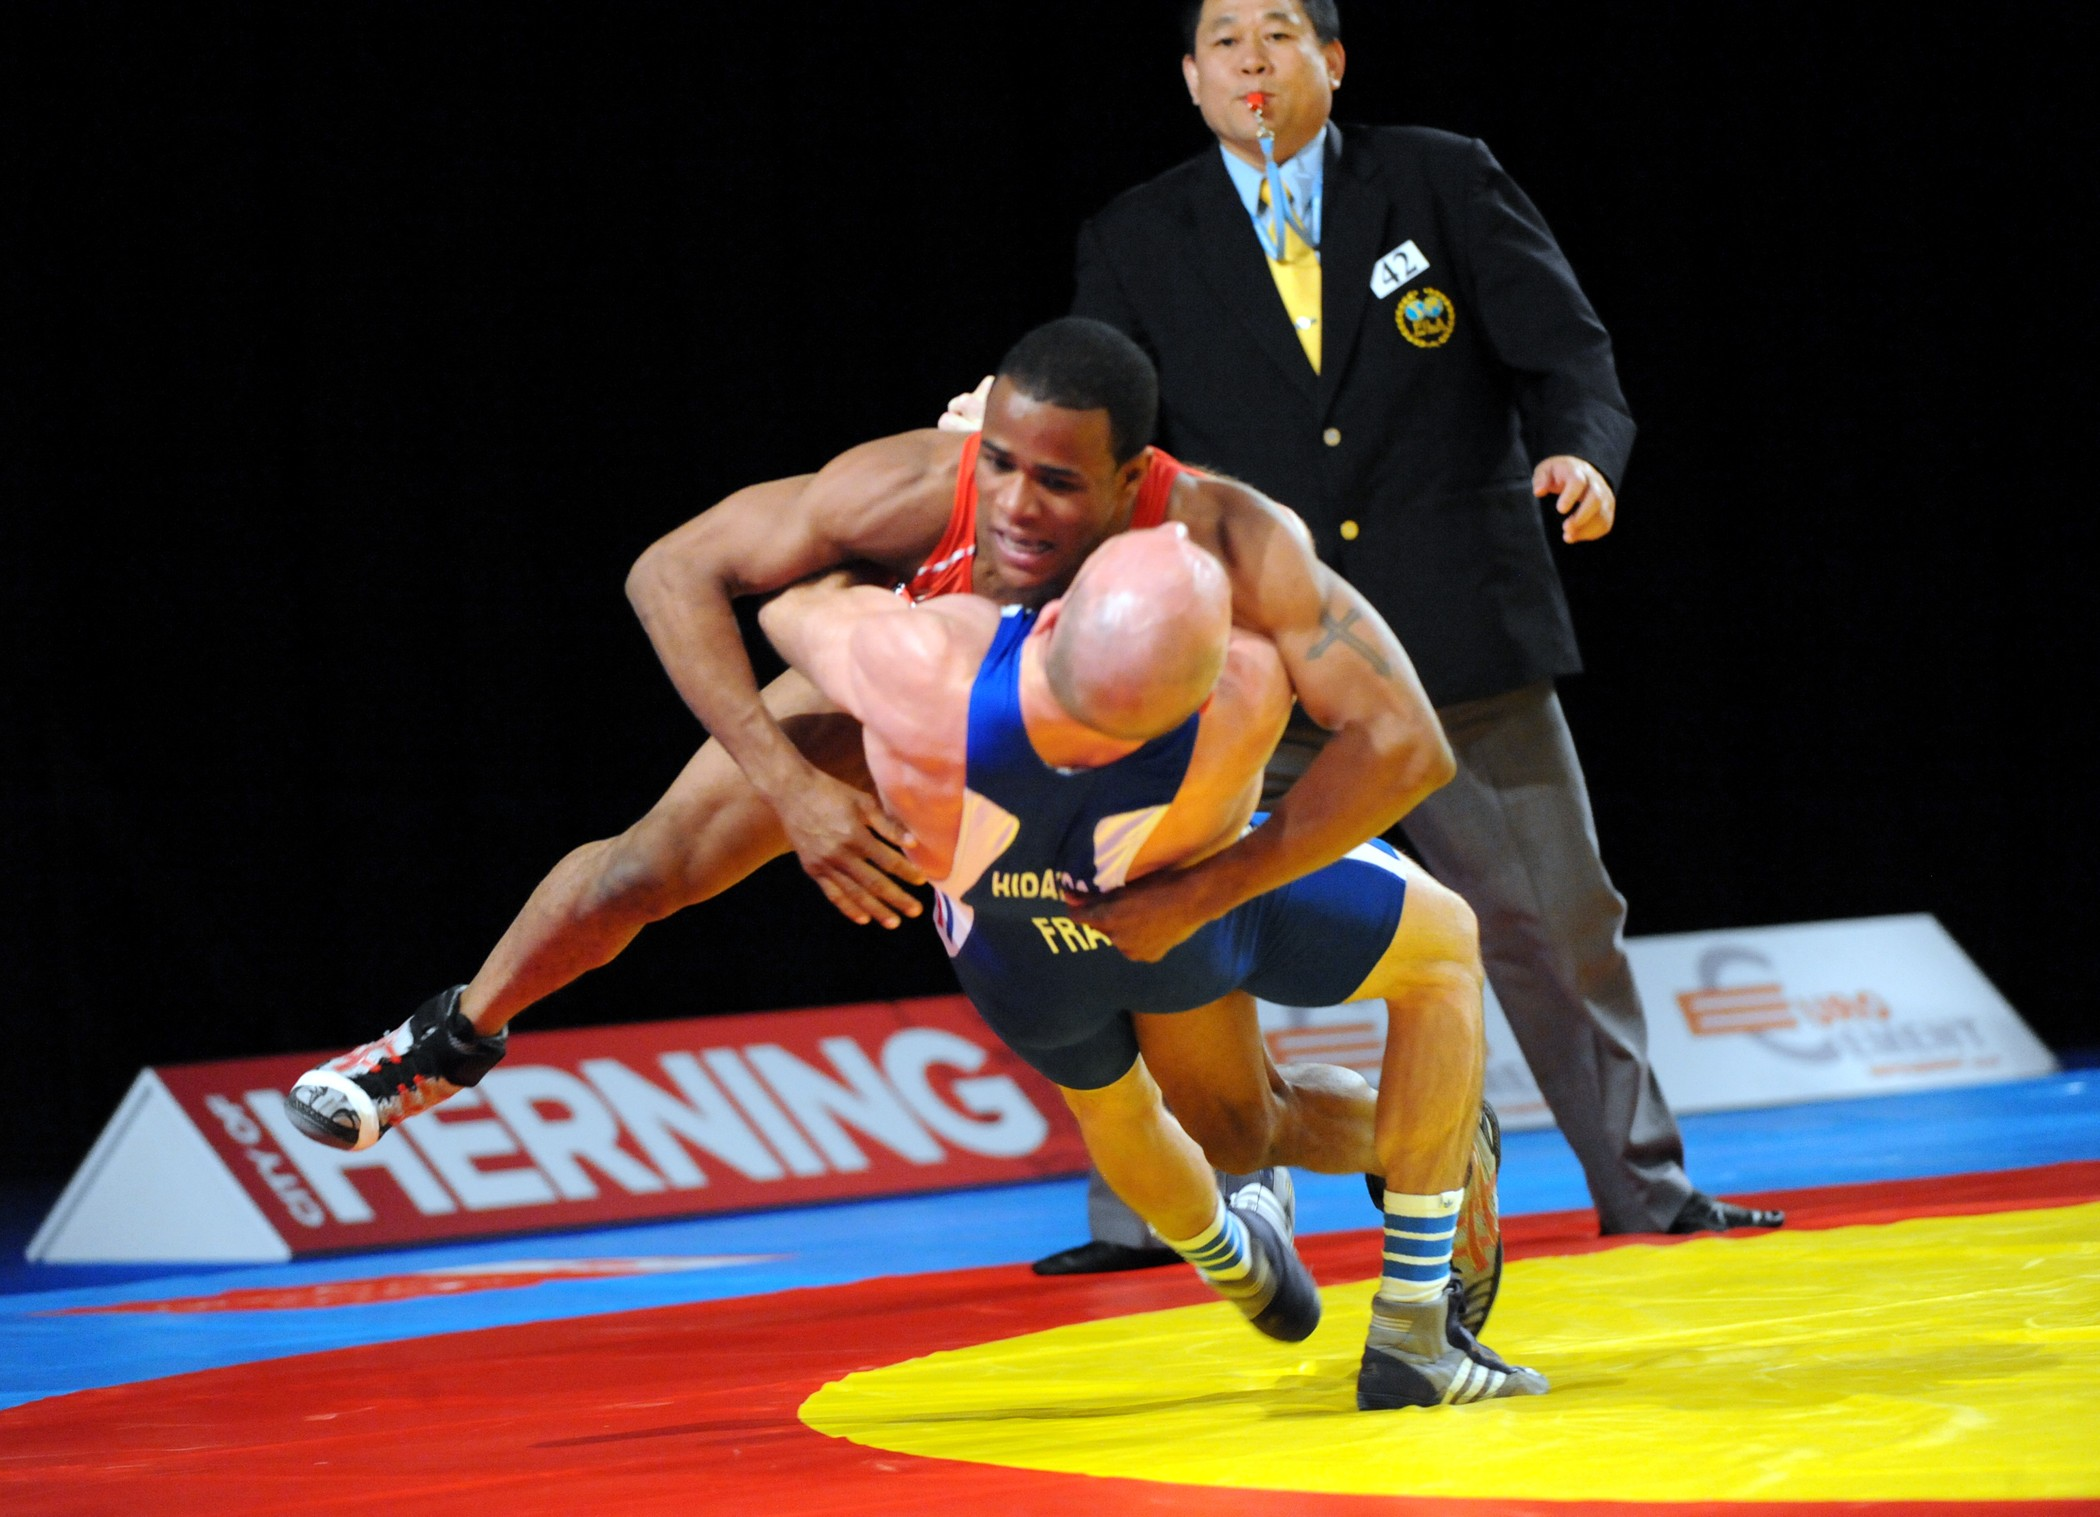 an introduction to the greco roman folkstyle and freestyle of wrestling Wrestling fundamentals can work in all  of freestyle and greco-roman wrestling become  similar to folkstyle than greco as an introduction to.